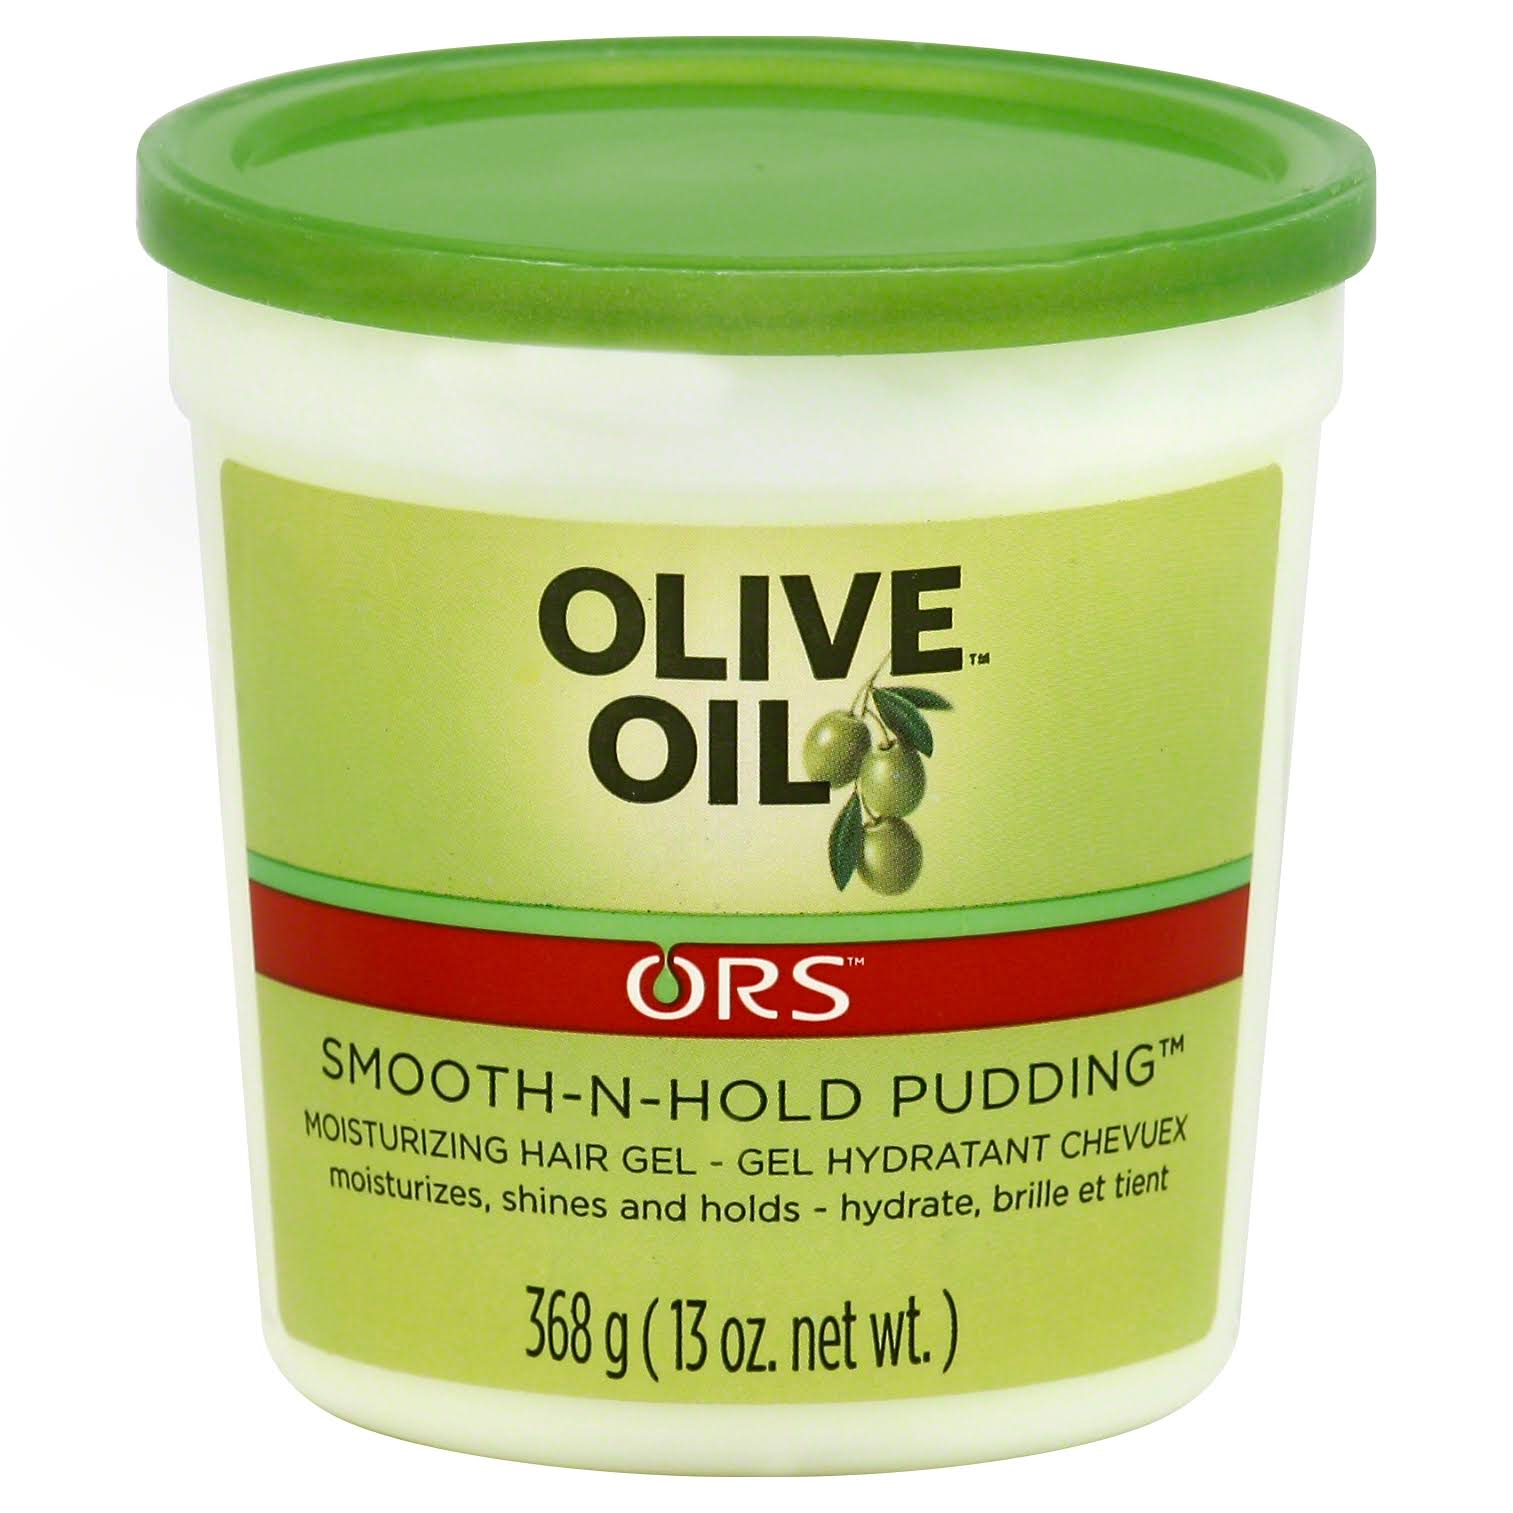 Organic Root Stimulator Olive Oil Smooth N Hold Pudding - 13oz